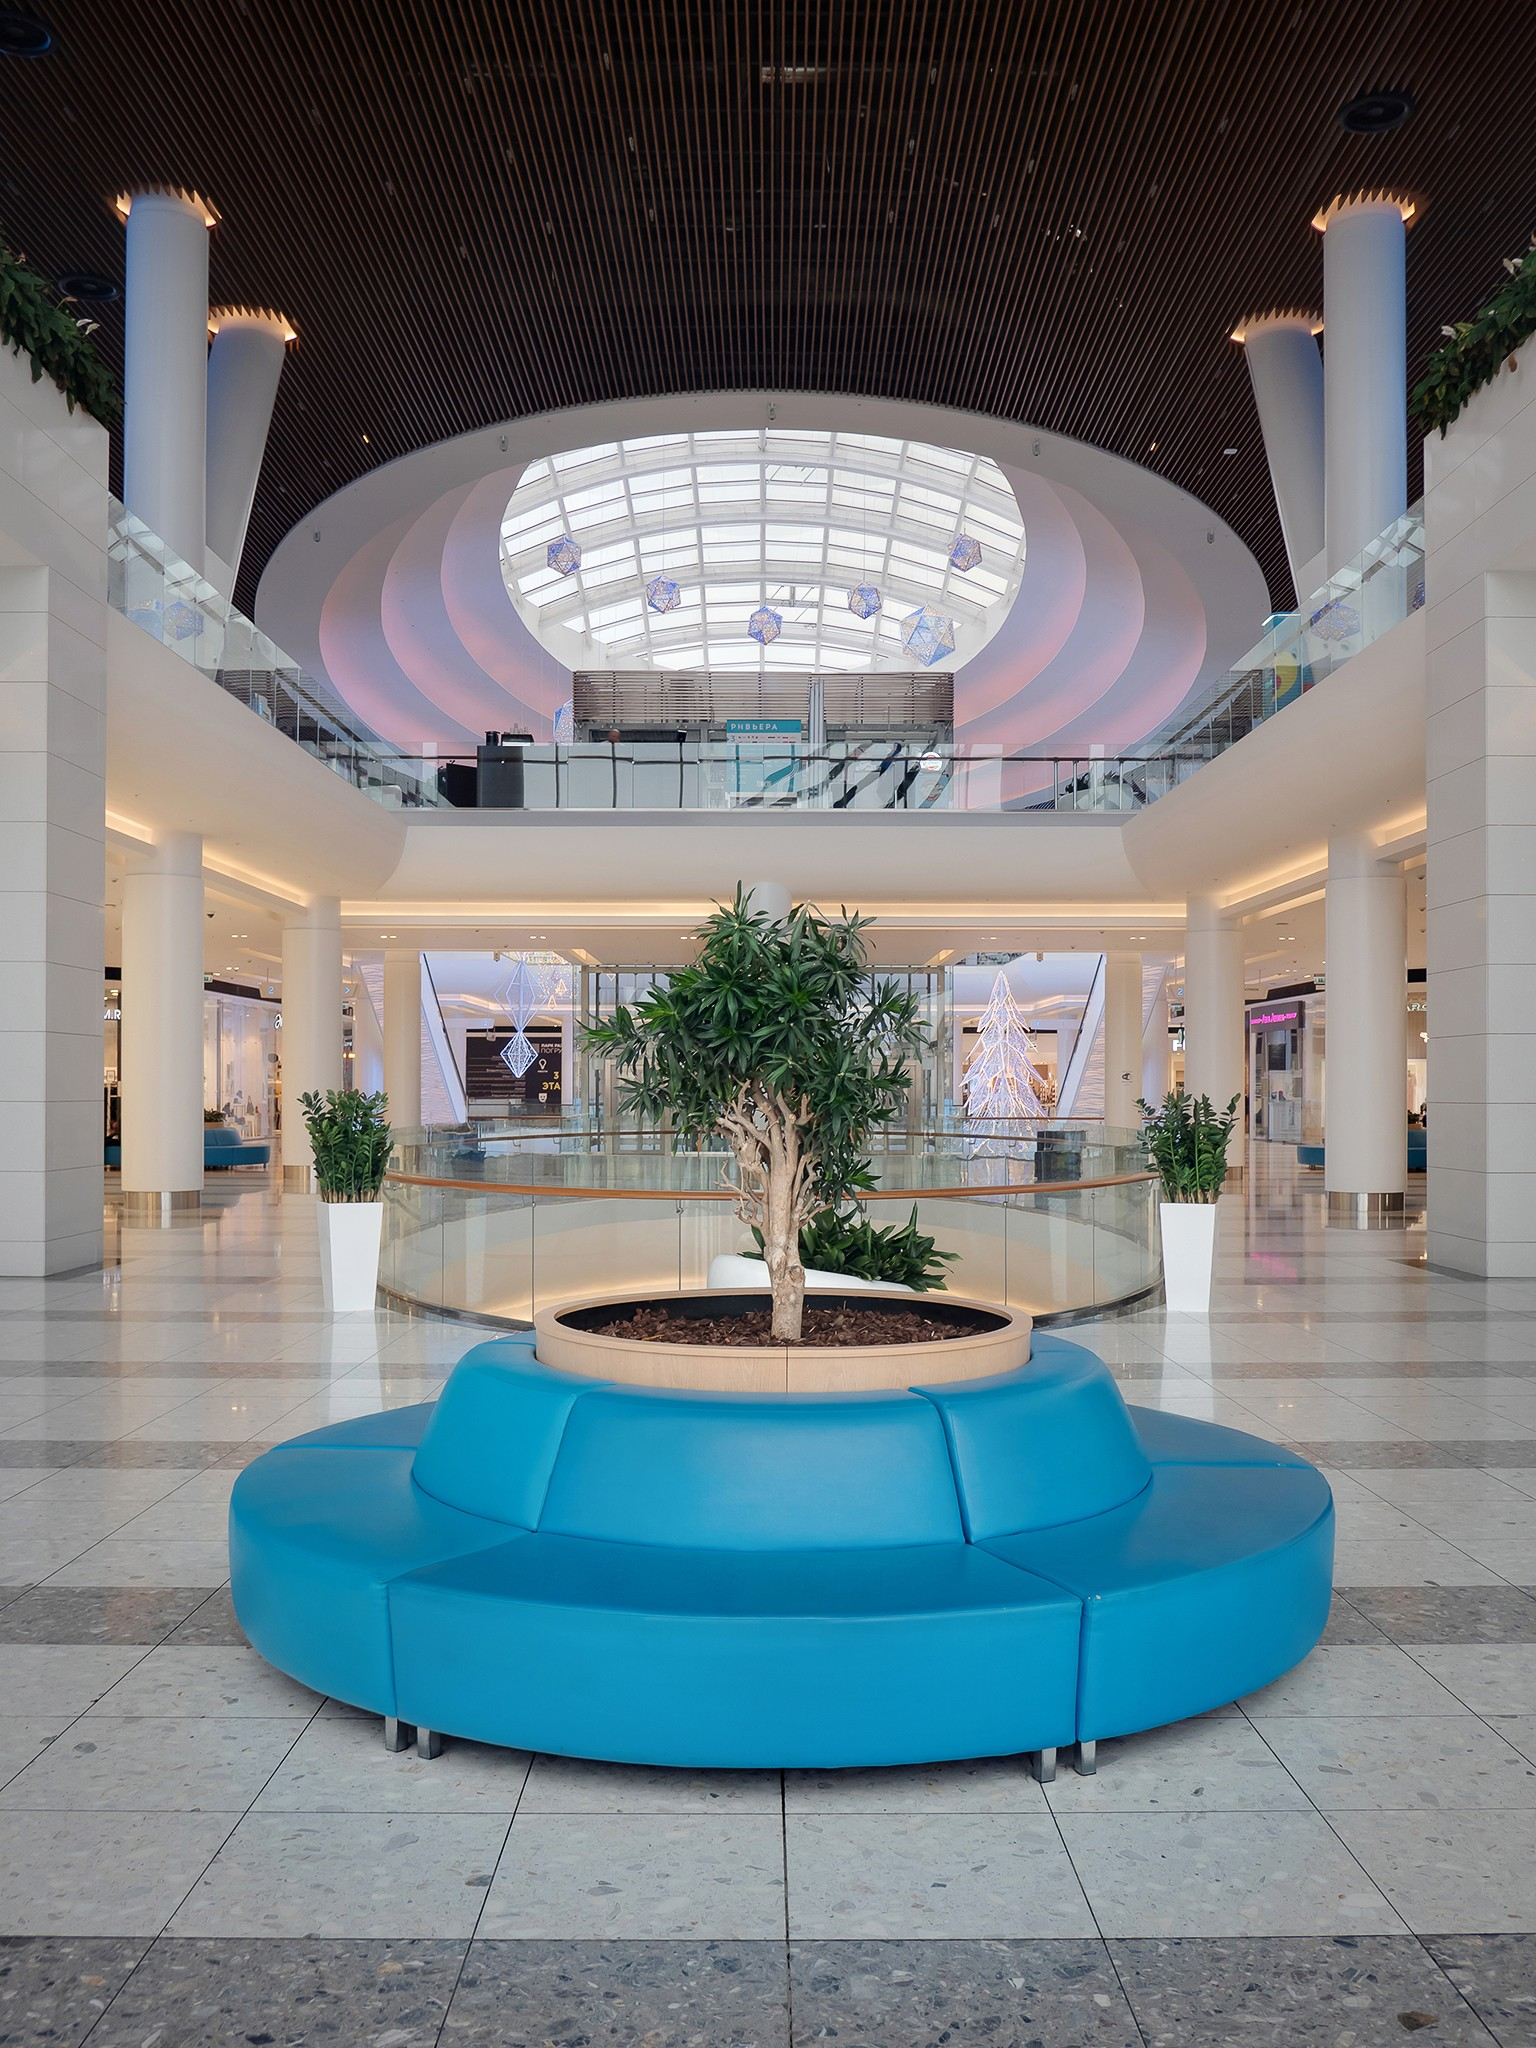 Photographing the interiors of shopping and entertainment centers